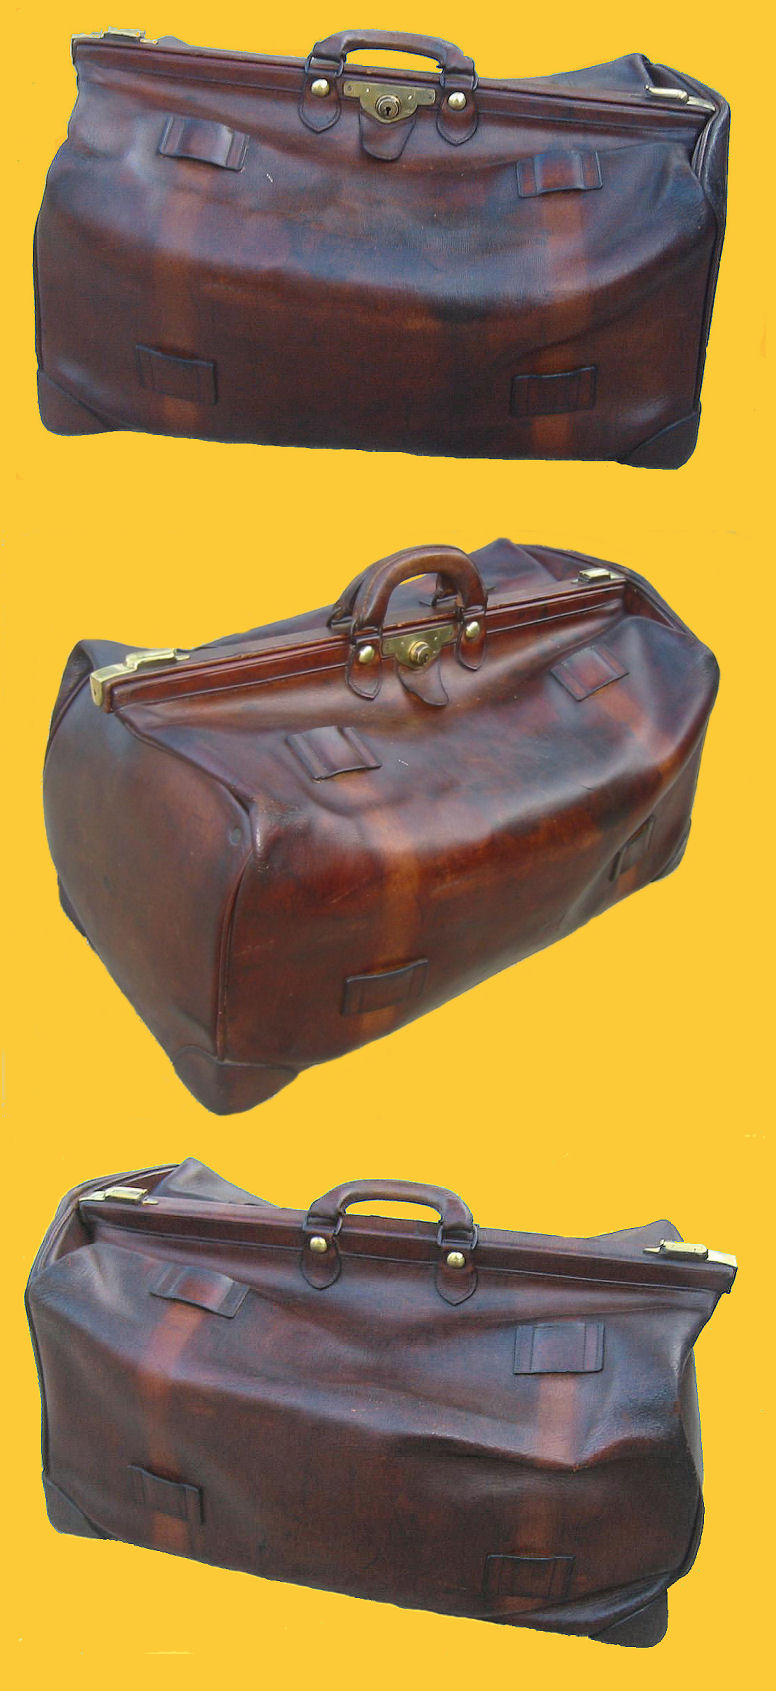 Antique Leather Luggage - Travel Bag c 1900's : Antique leather luggage